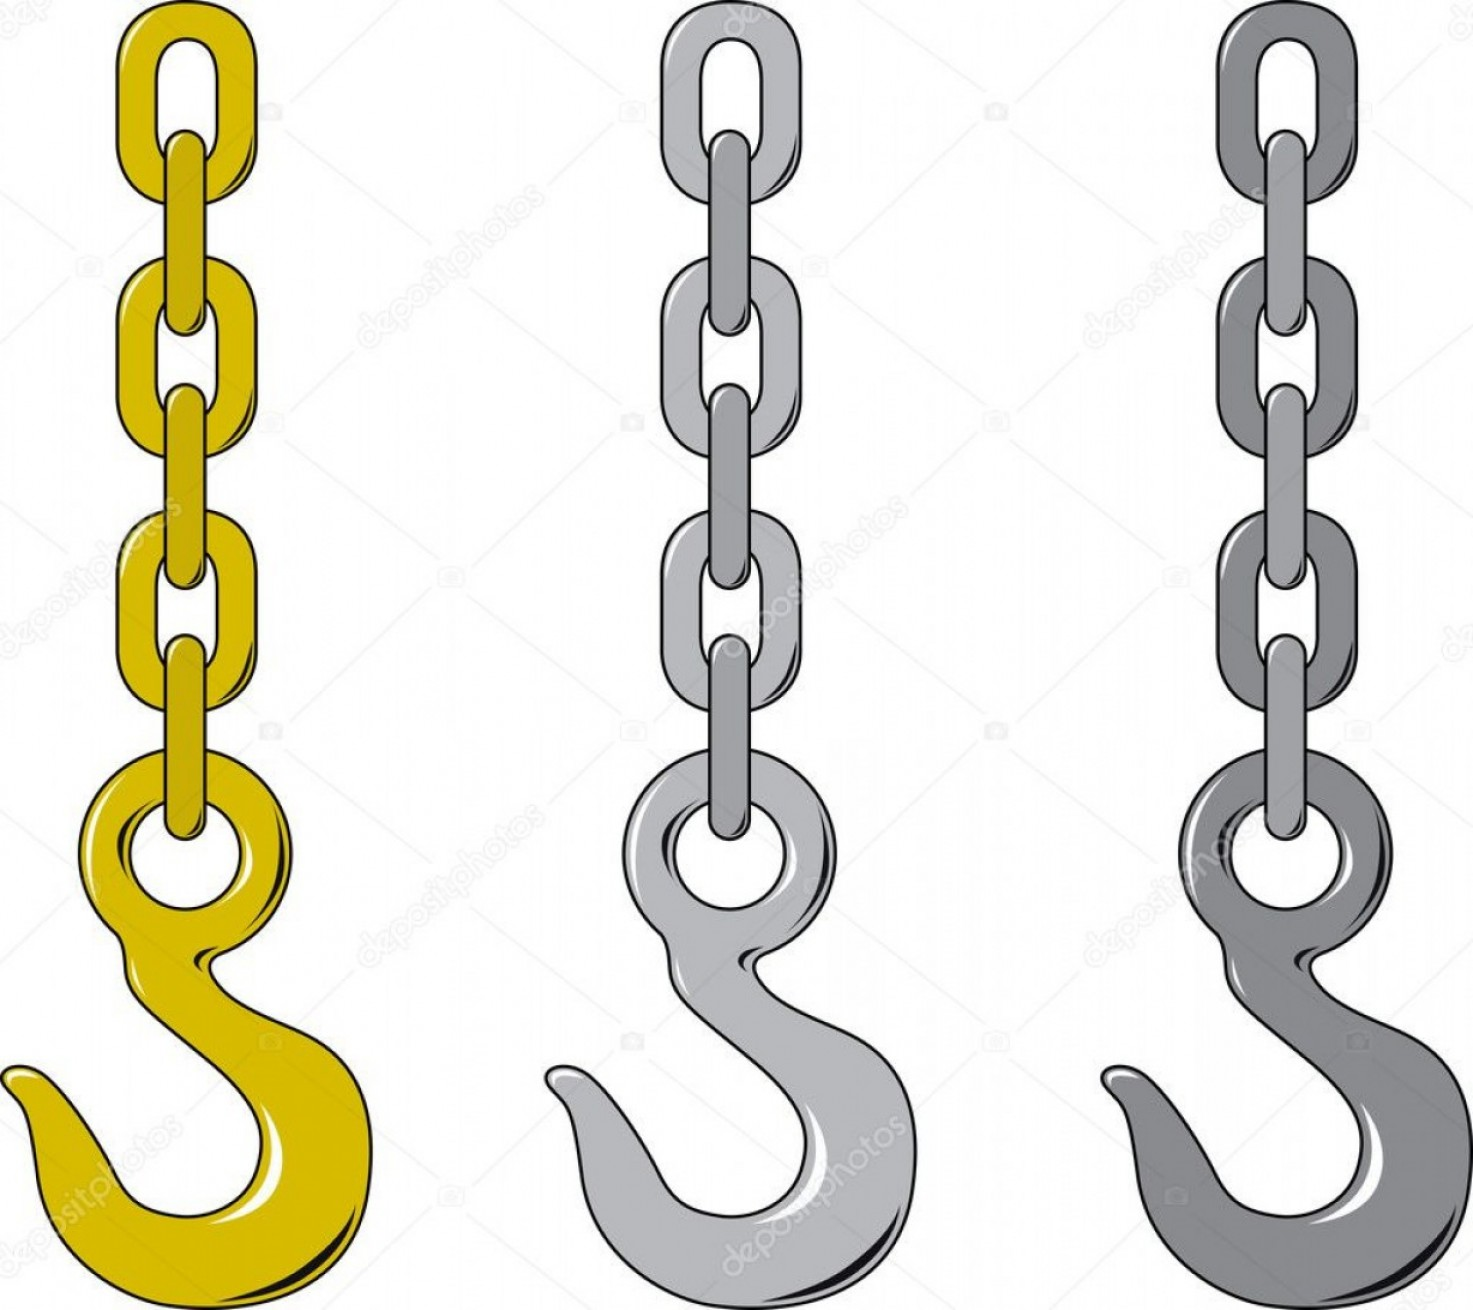 Towing Truck Hook Vector: Tow Hook And Chain Clip Art